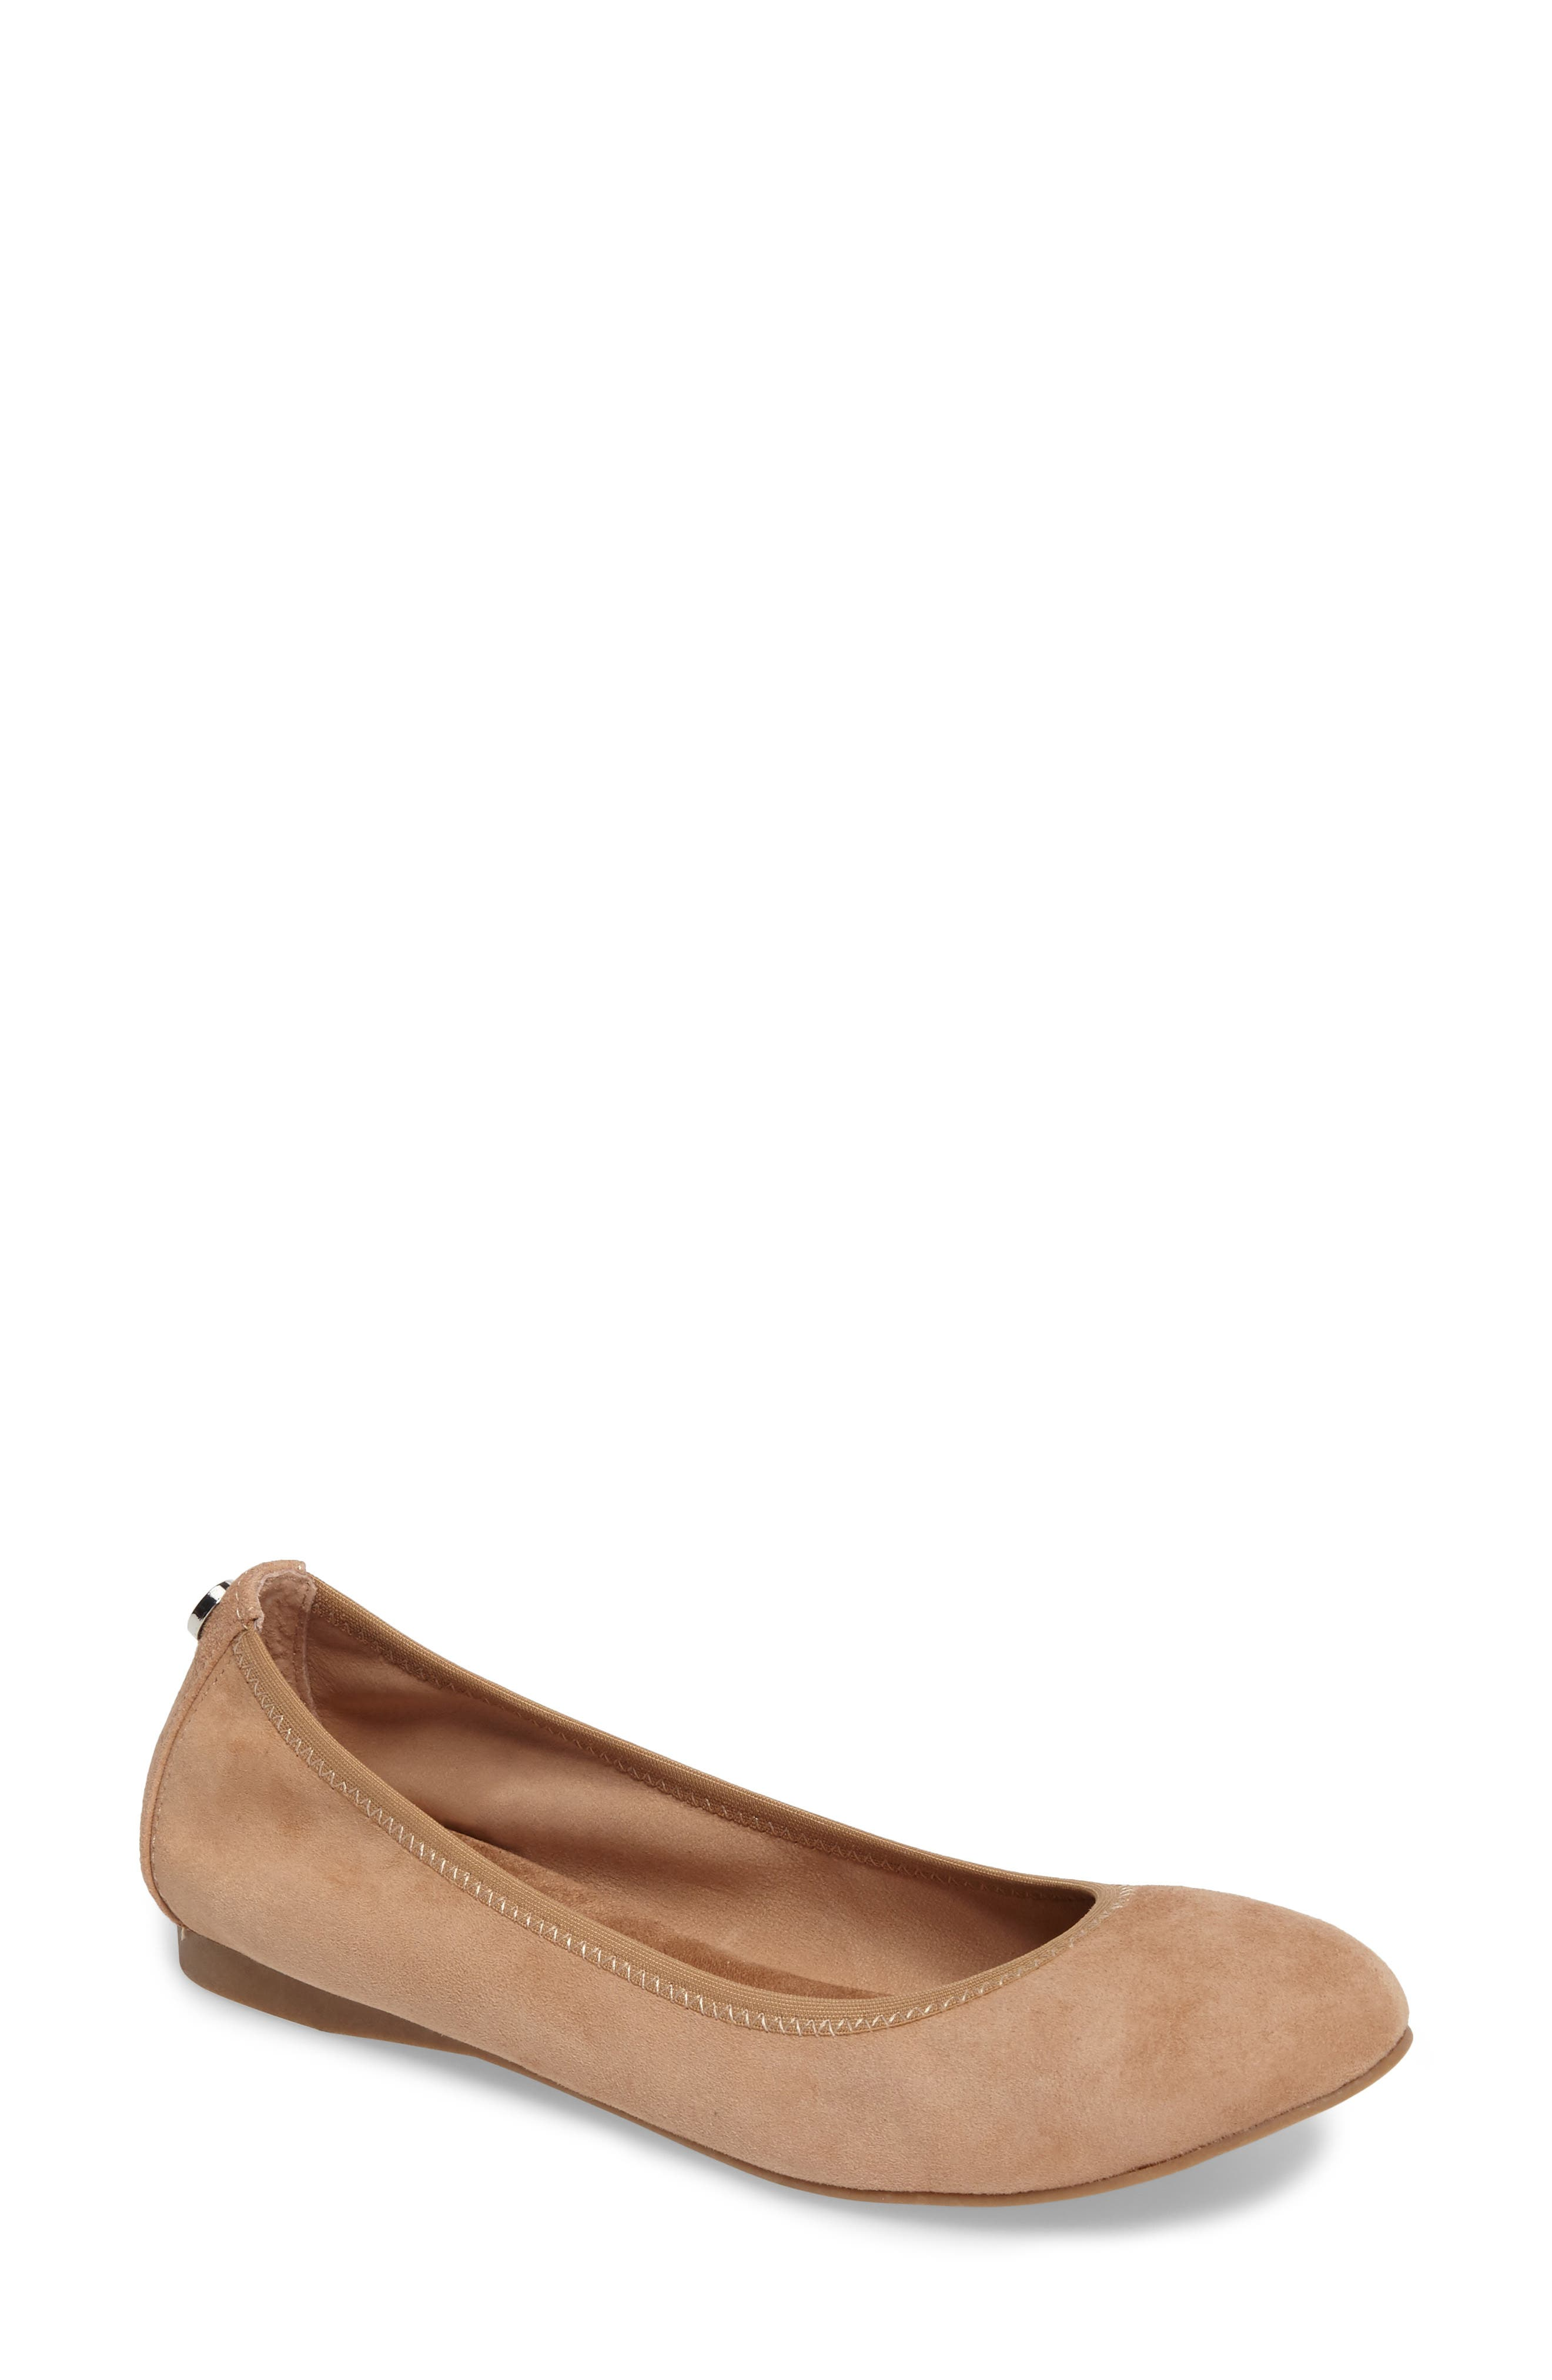 Alternate Image 1 Selected - Steve Madden Bonnie Ballet Flat (Women)